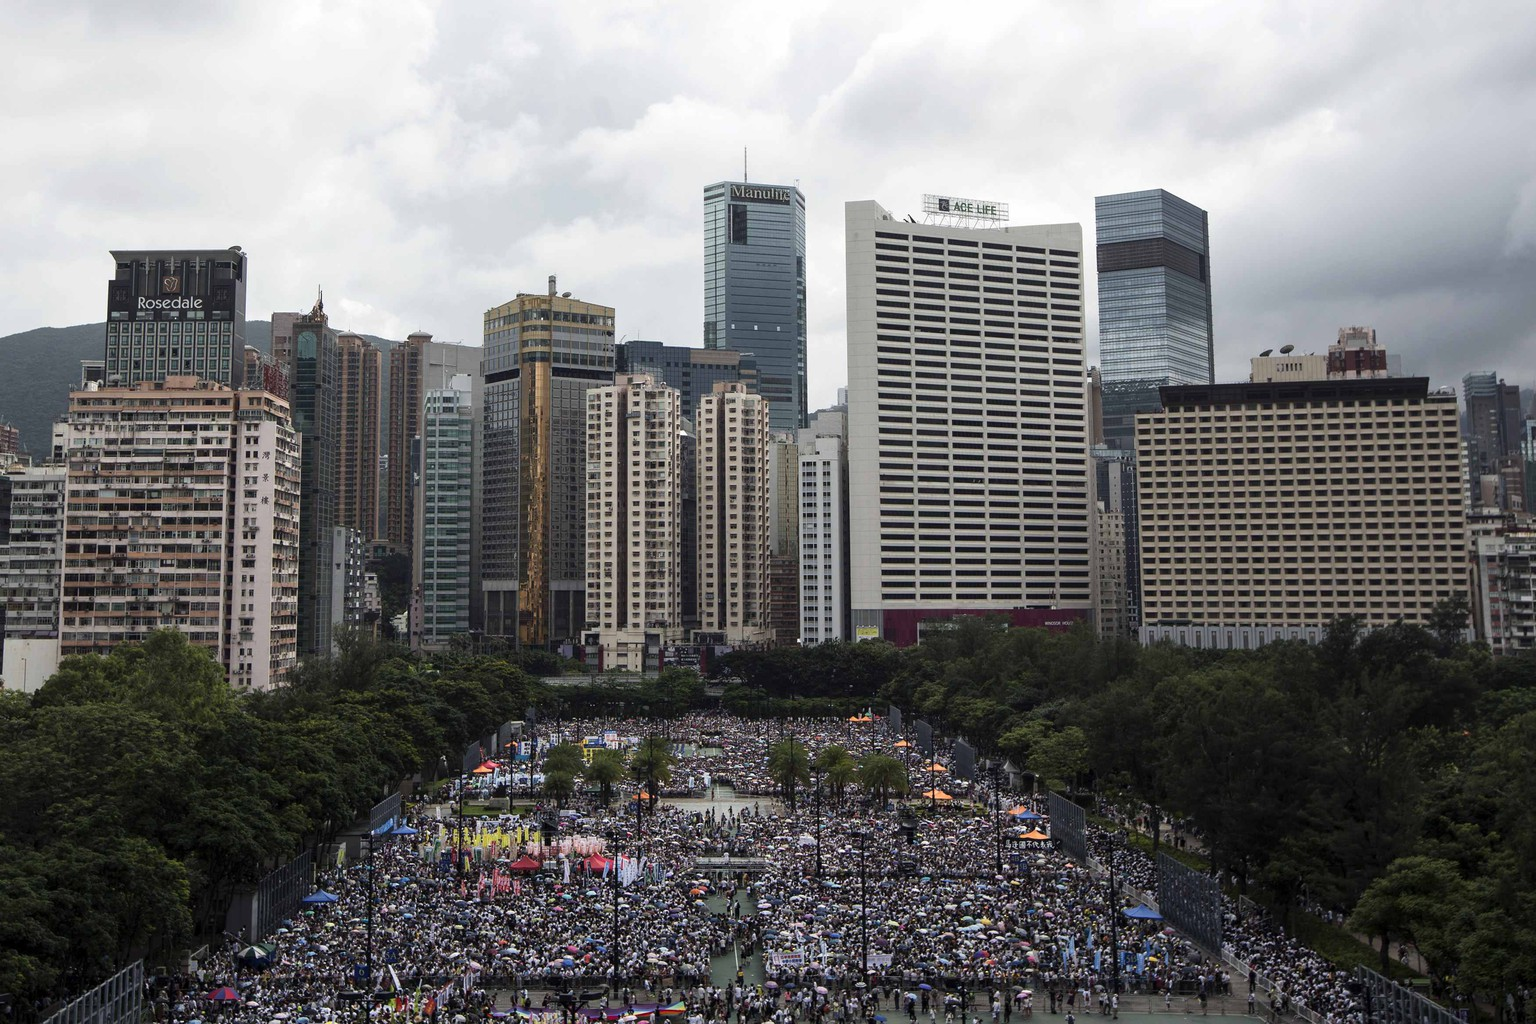 Thousands of pro-democracy protesters gather to march in the streets to demand universal suffrage in Hong Kong July 1, 2014. Pro-democracy protesters gathered for a mass march in Hong Kong on Tuesday, with one burning a photograph of the city's leader and another calling for him to be sacked, in what could be the biggest challenge to Chinese Communist Party rule in more than a decade. REUTERS/Tyrone Siu (CHINA - Tags: POLITICS CIVIL UNREST)